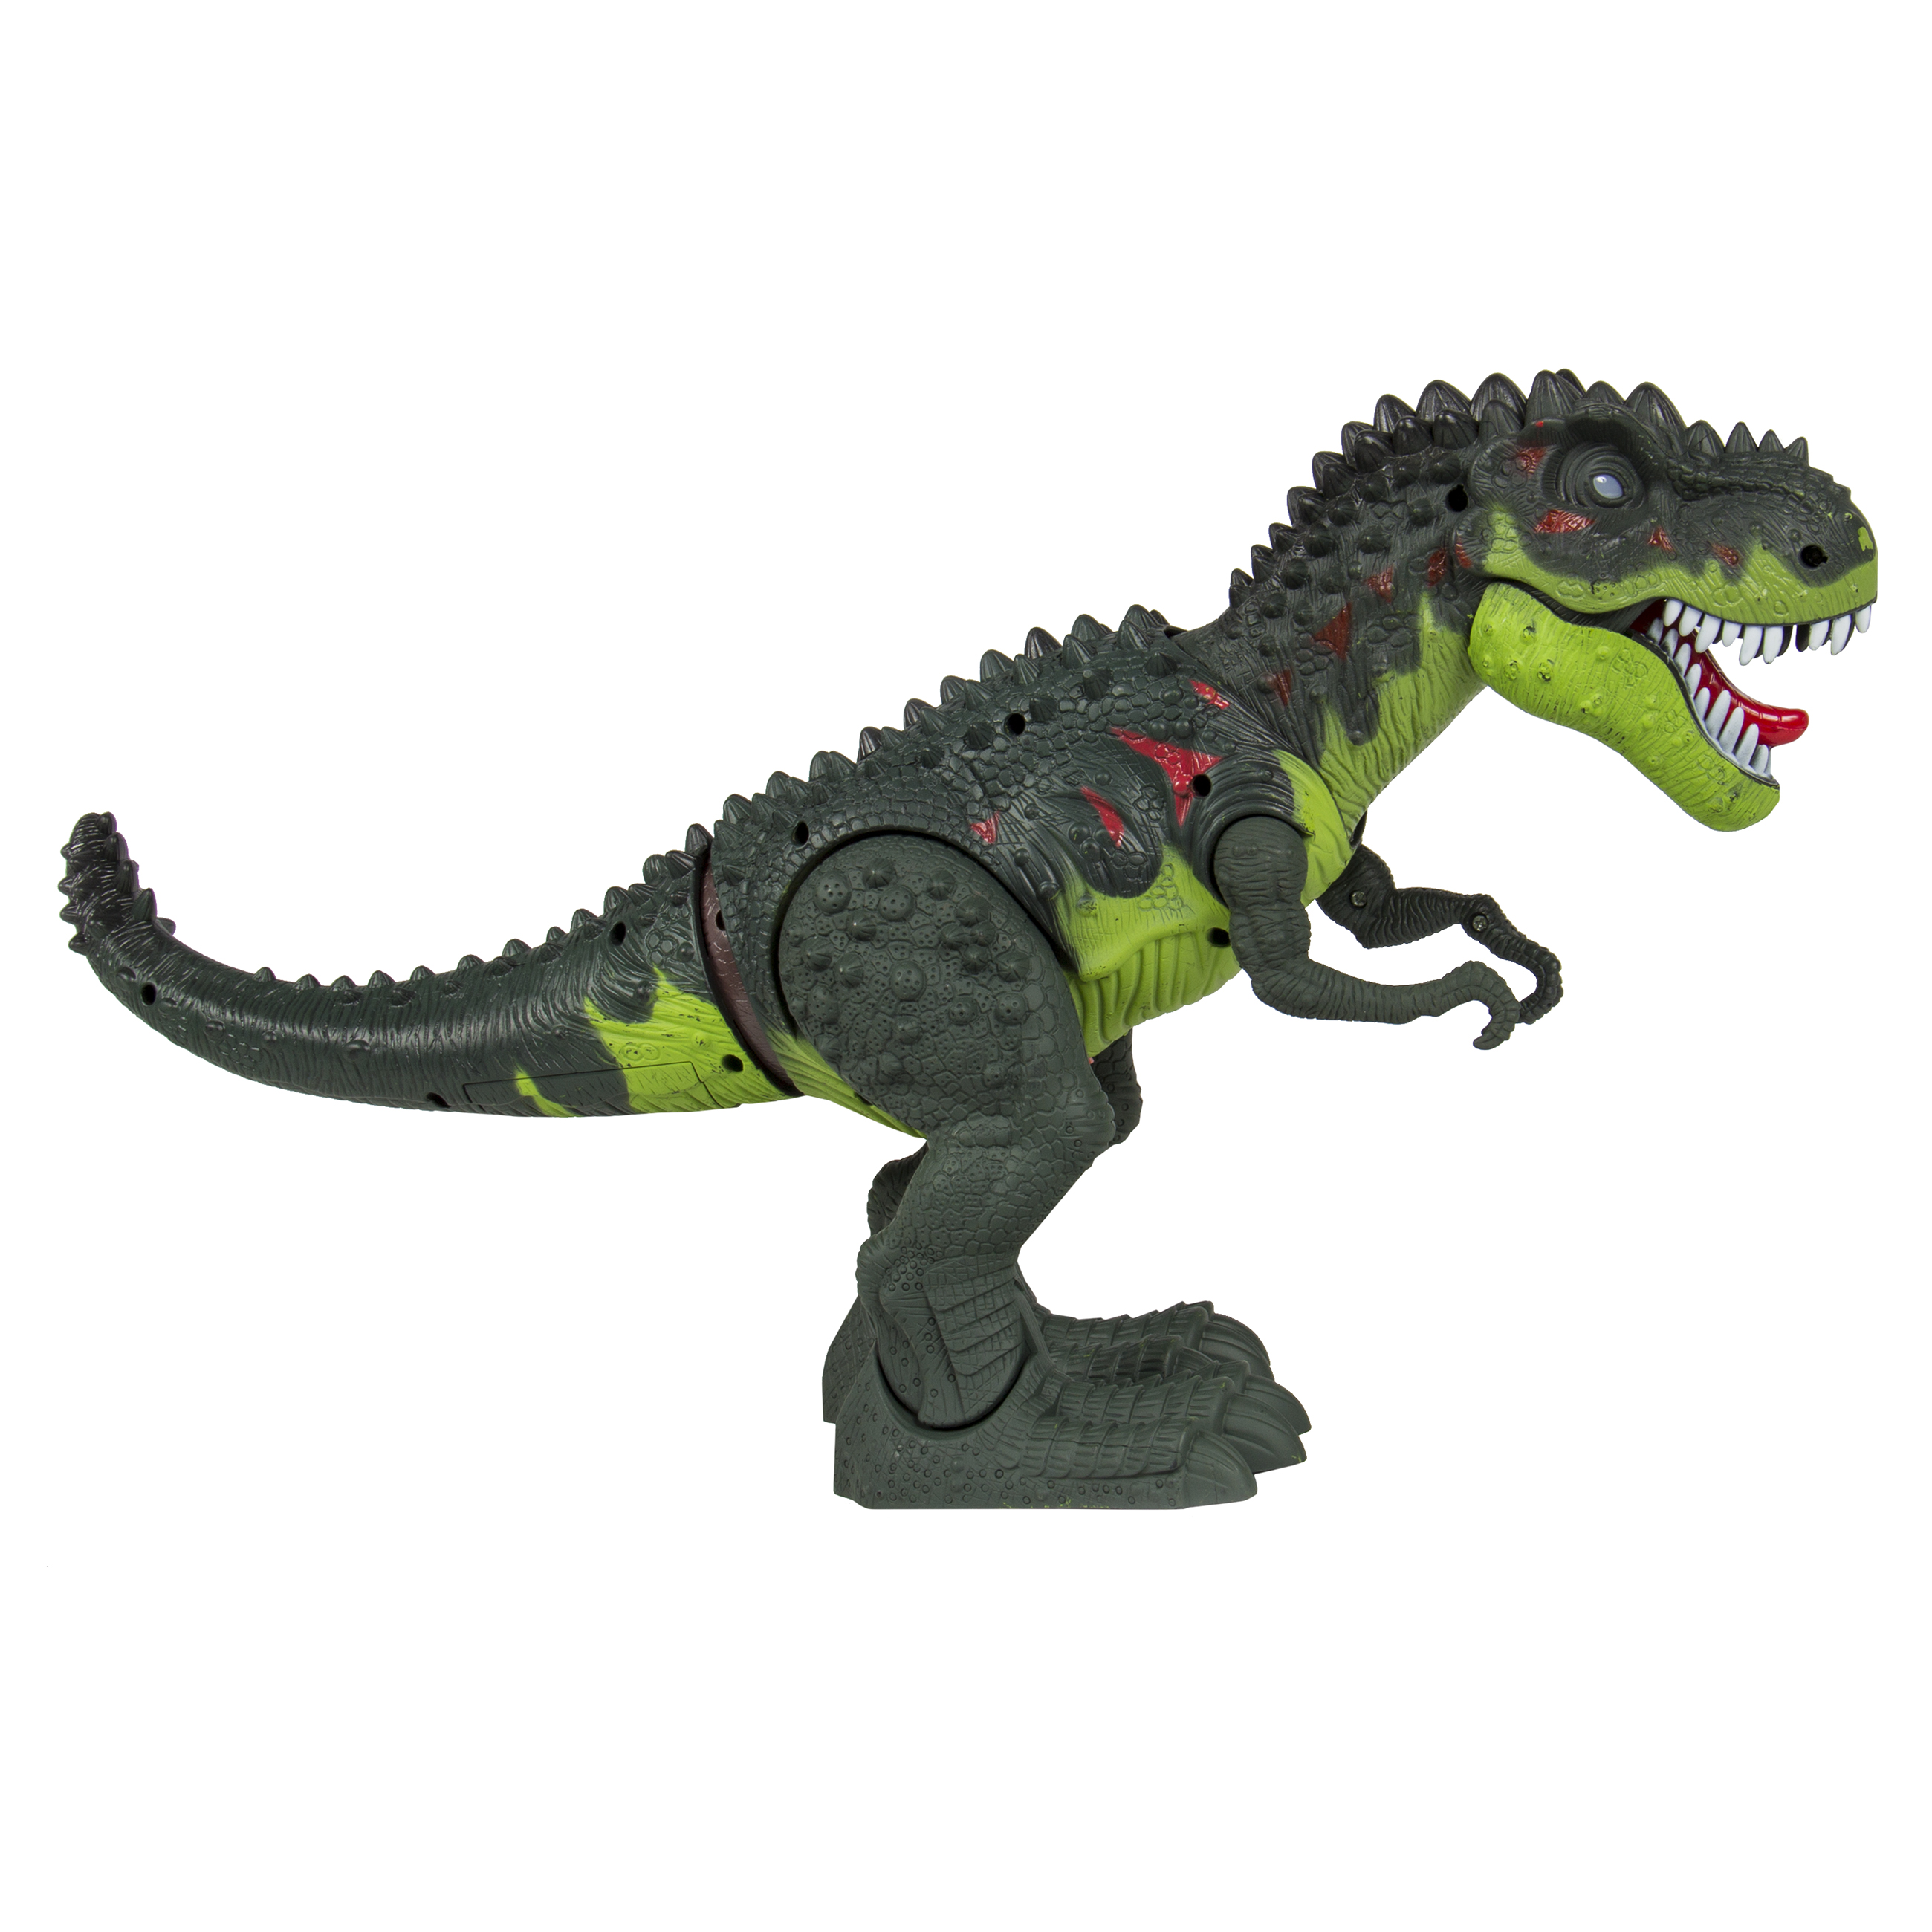 Kids Toy Walking T Rex Dinosaur Toy Figure With Lights & Sounds